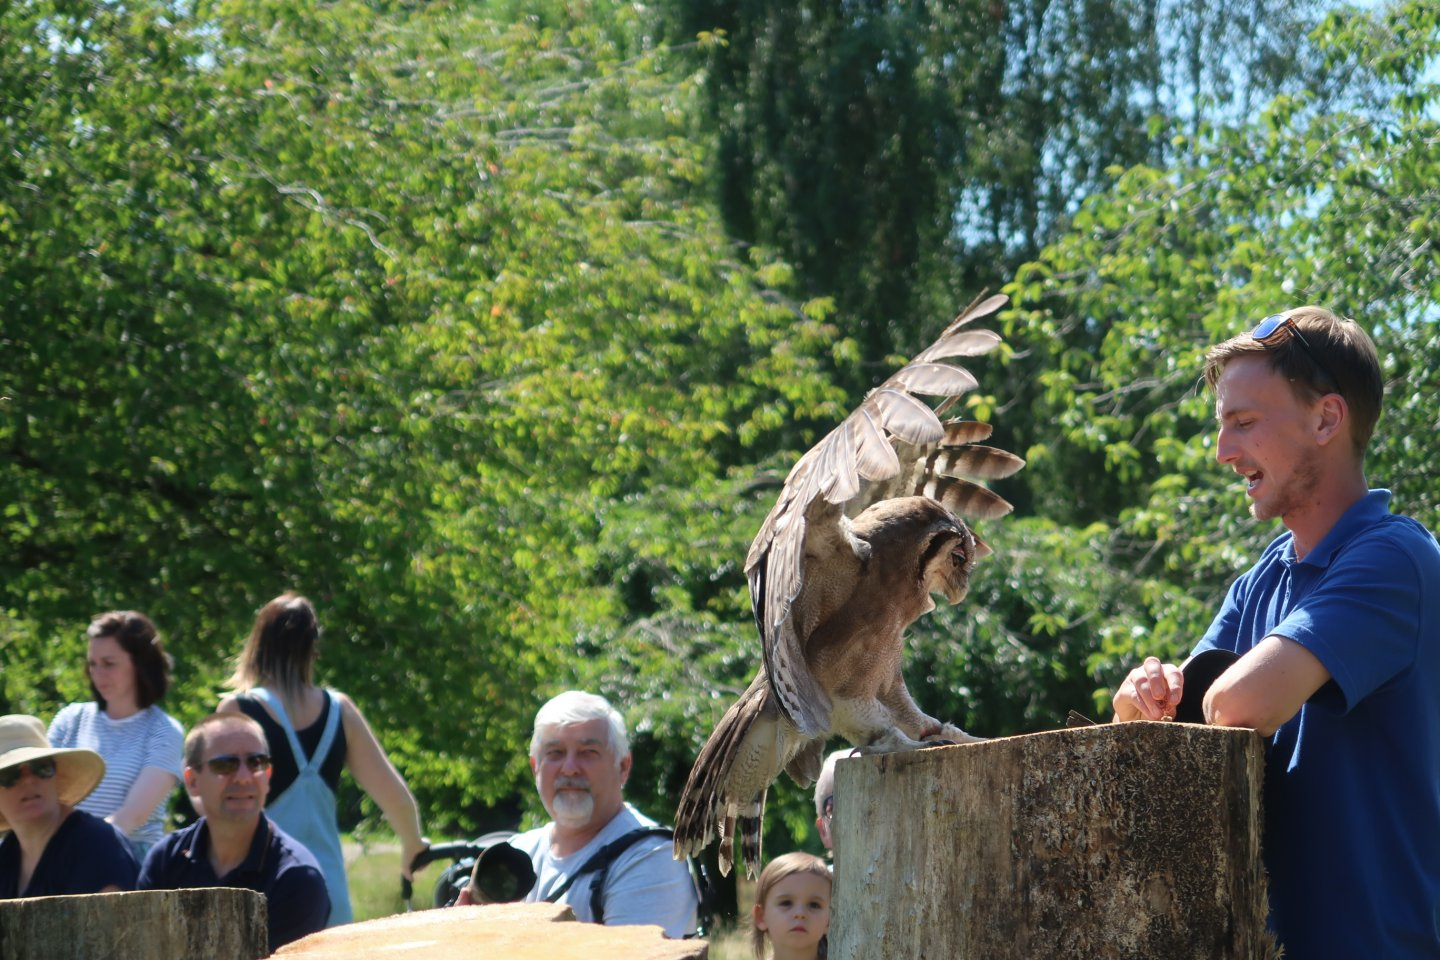 The eagle owl lands on a log in front of a keeper, with wings outstretched as part of the Amazing African Animals display at Africa Alive.